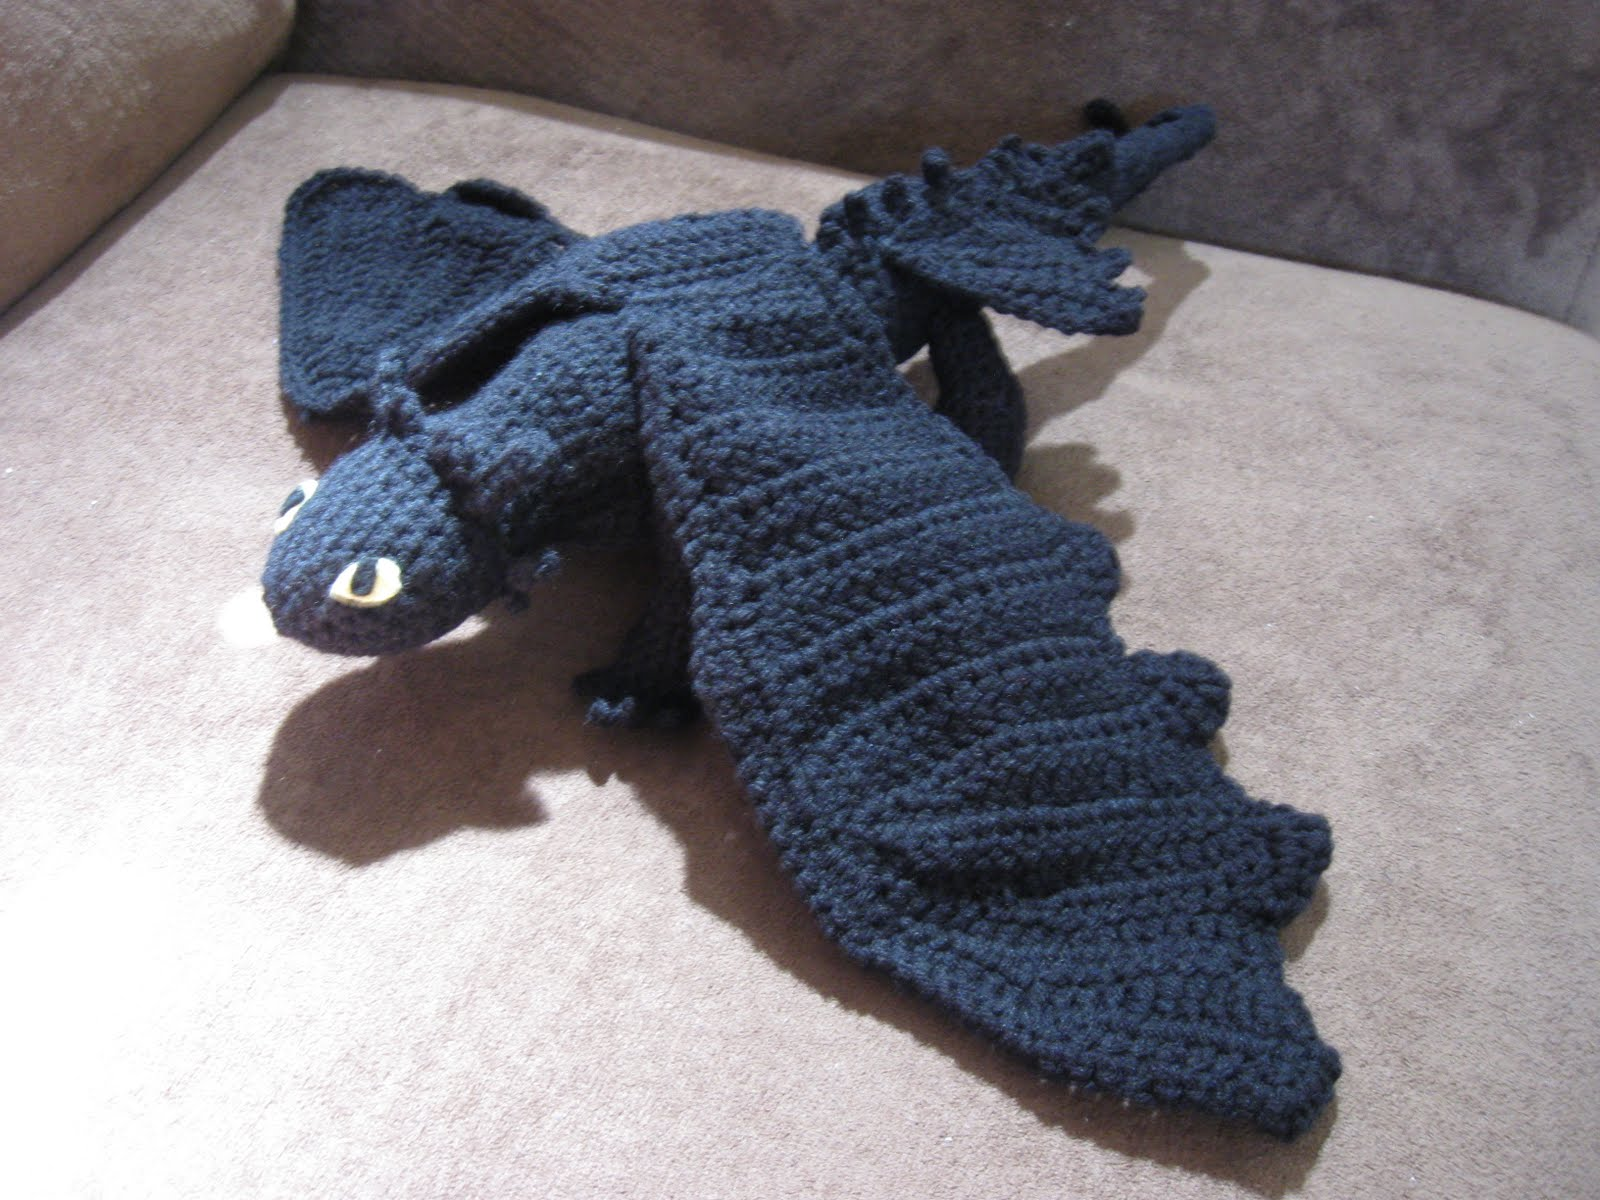 Free Crochet Pattern For Toothless The Dragon : Mostly Nerdy Crochet: Crochet Toothless II